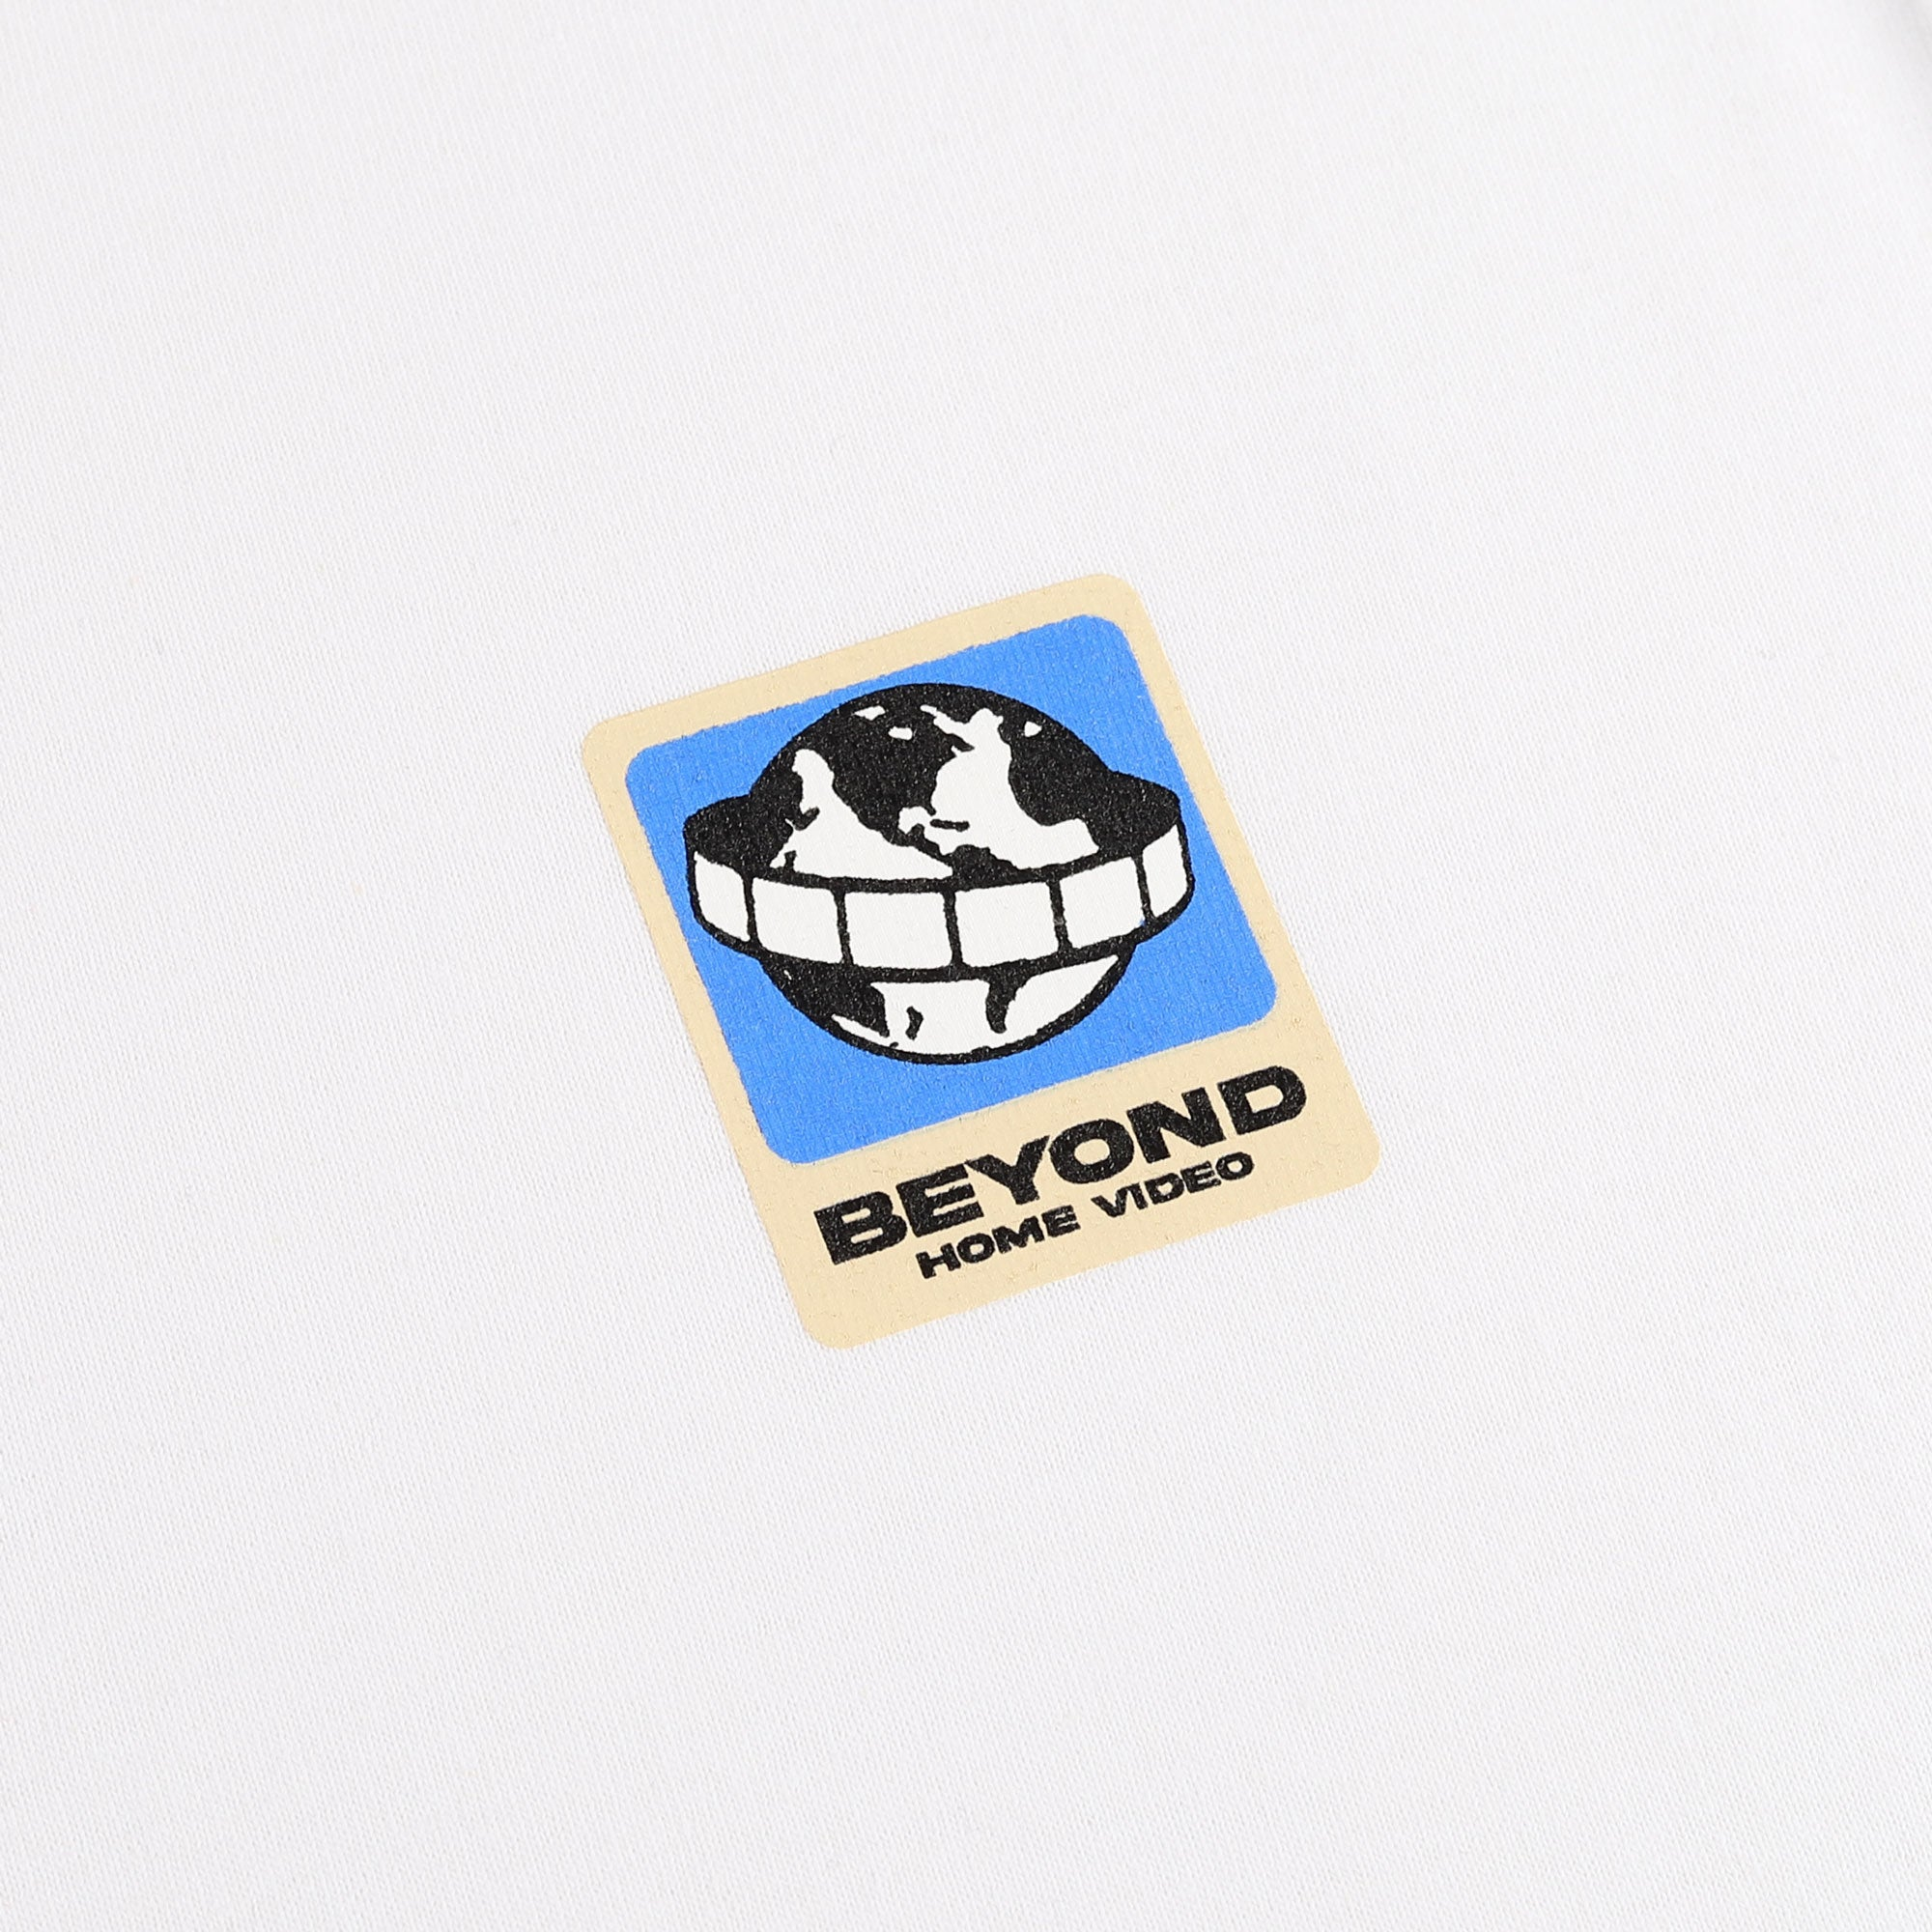 Beyond Home Videos Tee Product Photo #2